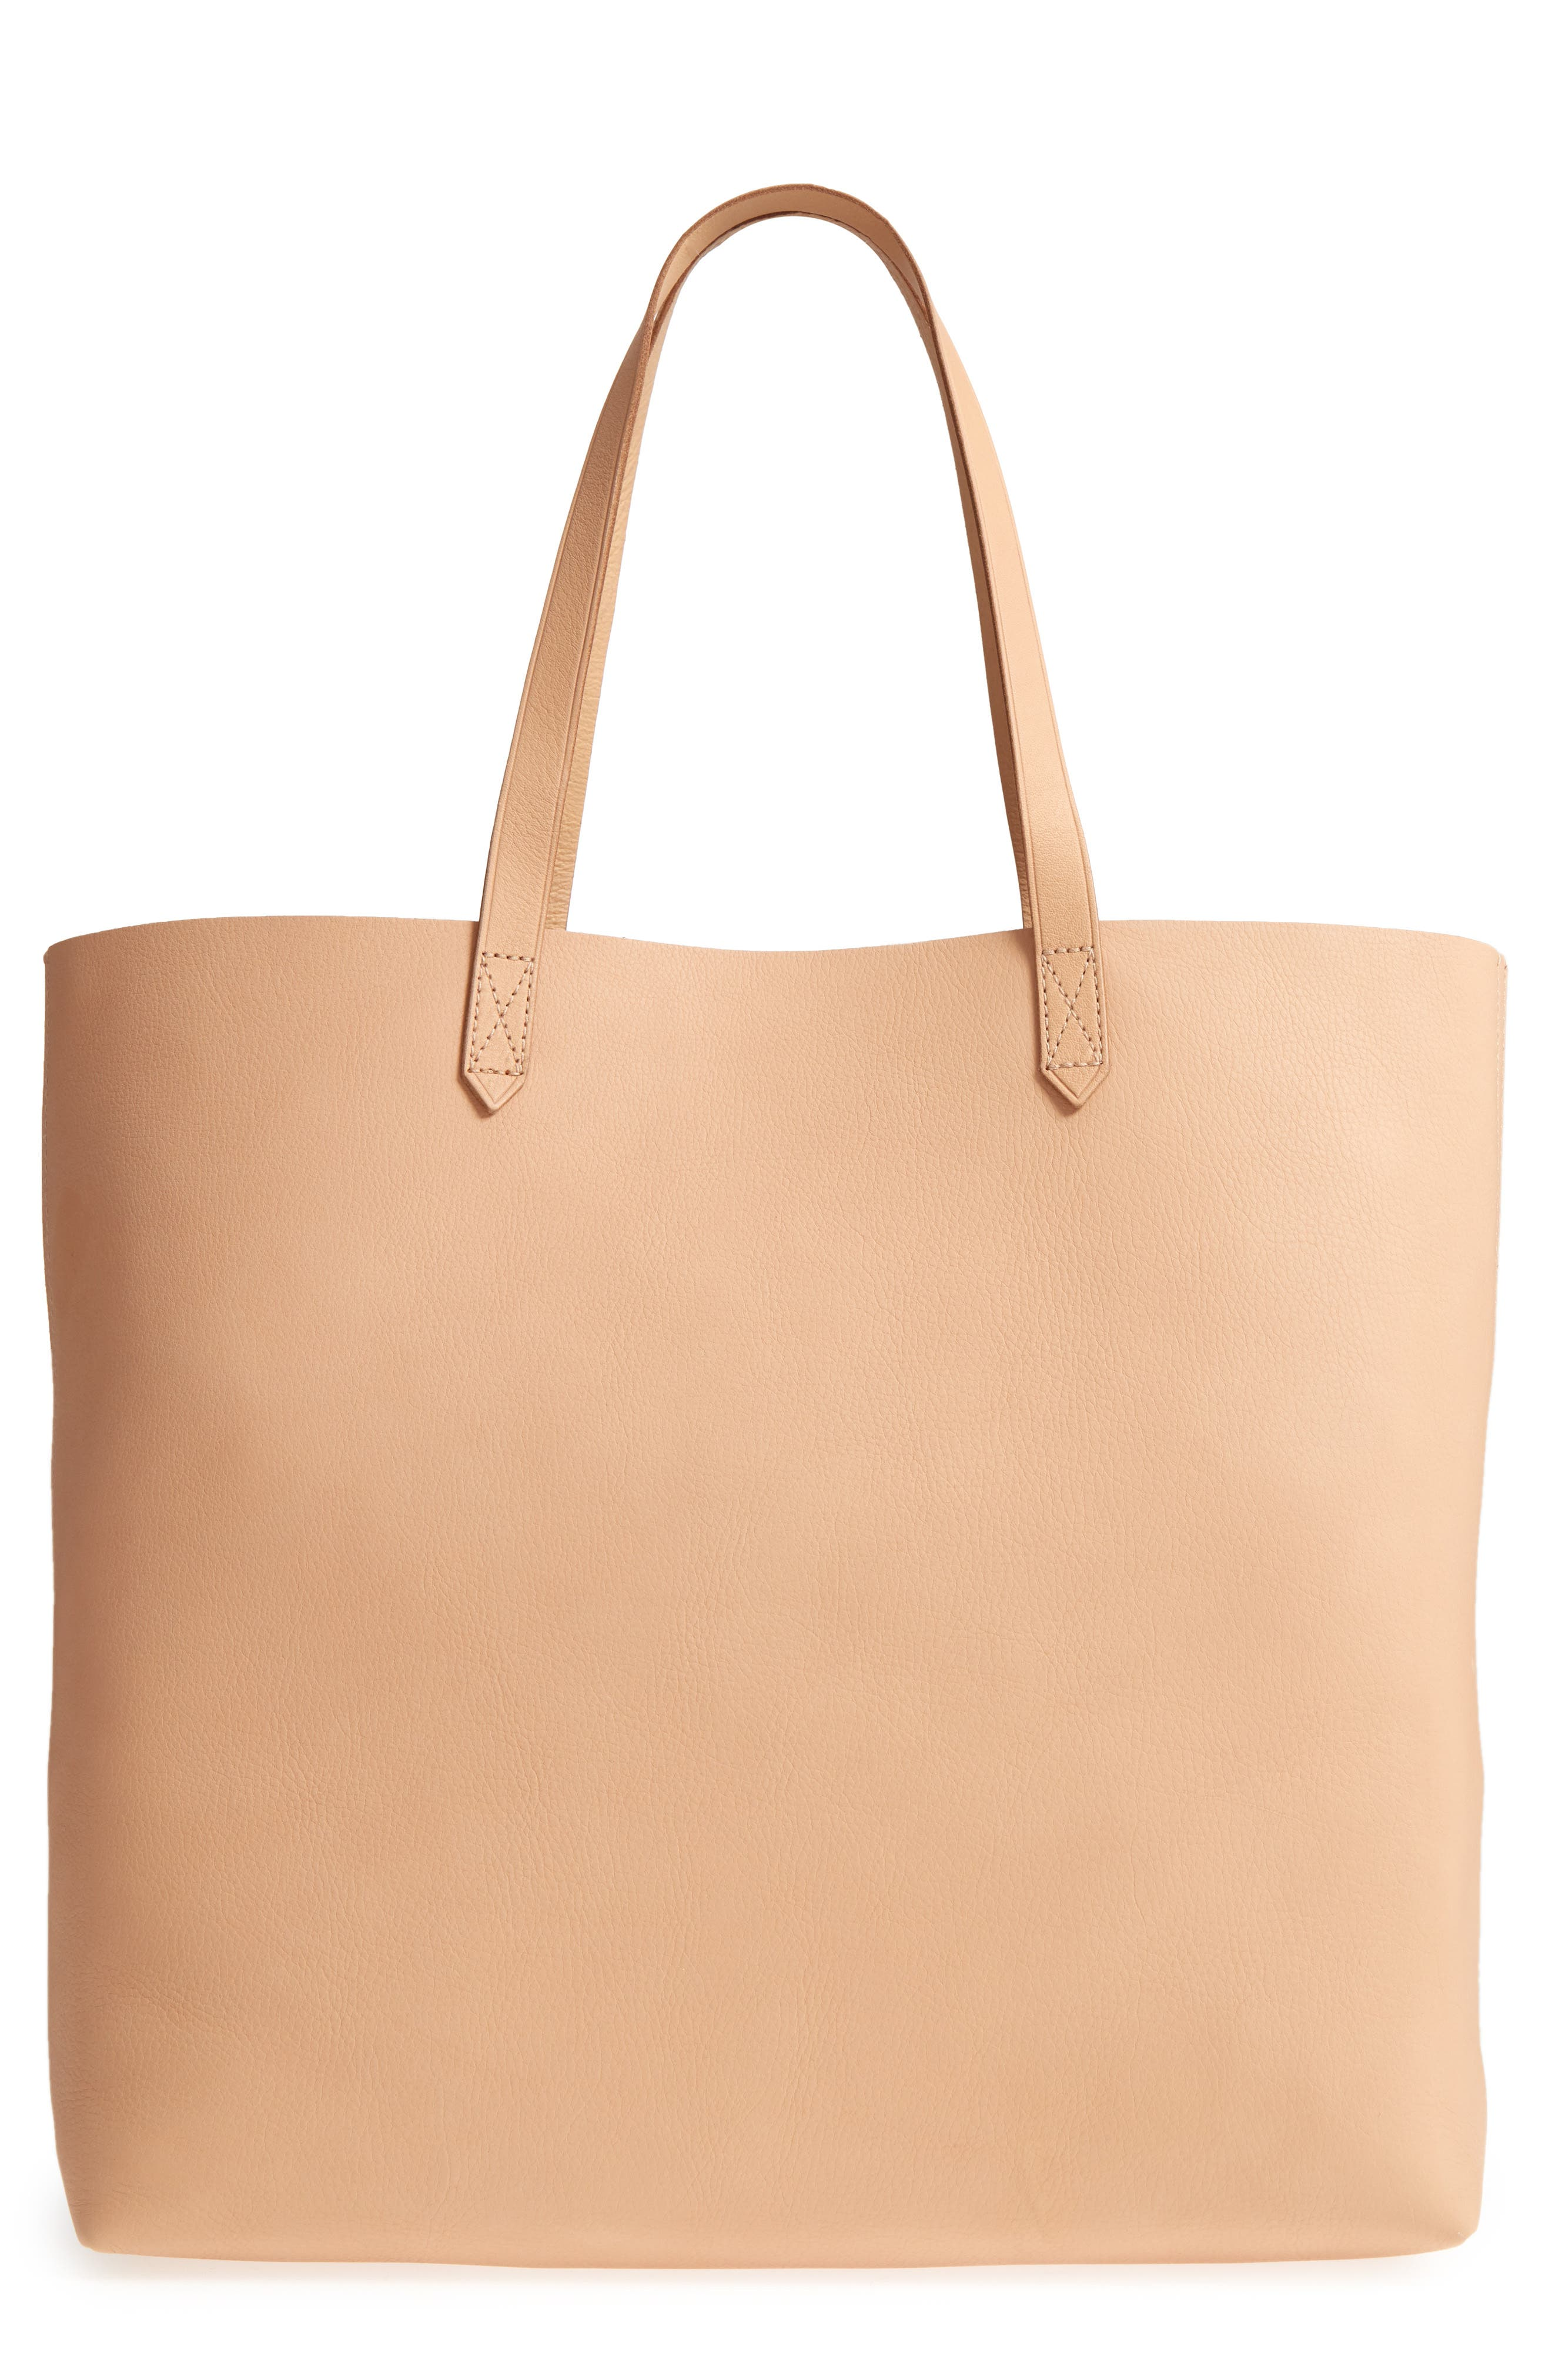 'Transport' Leather Tote,                         Main,                         color, LINEN